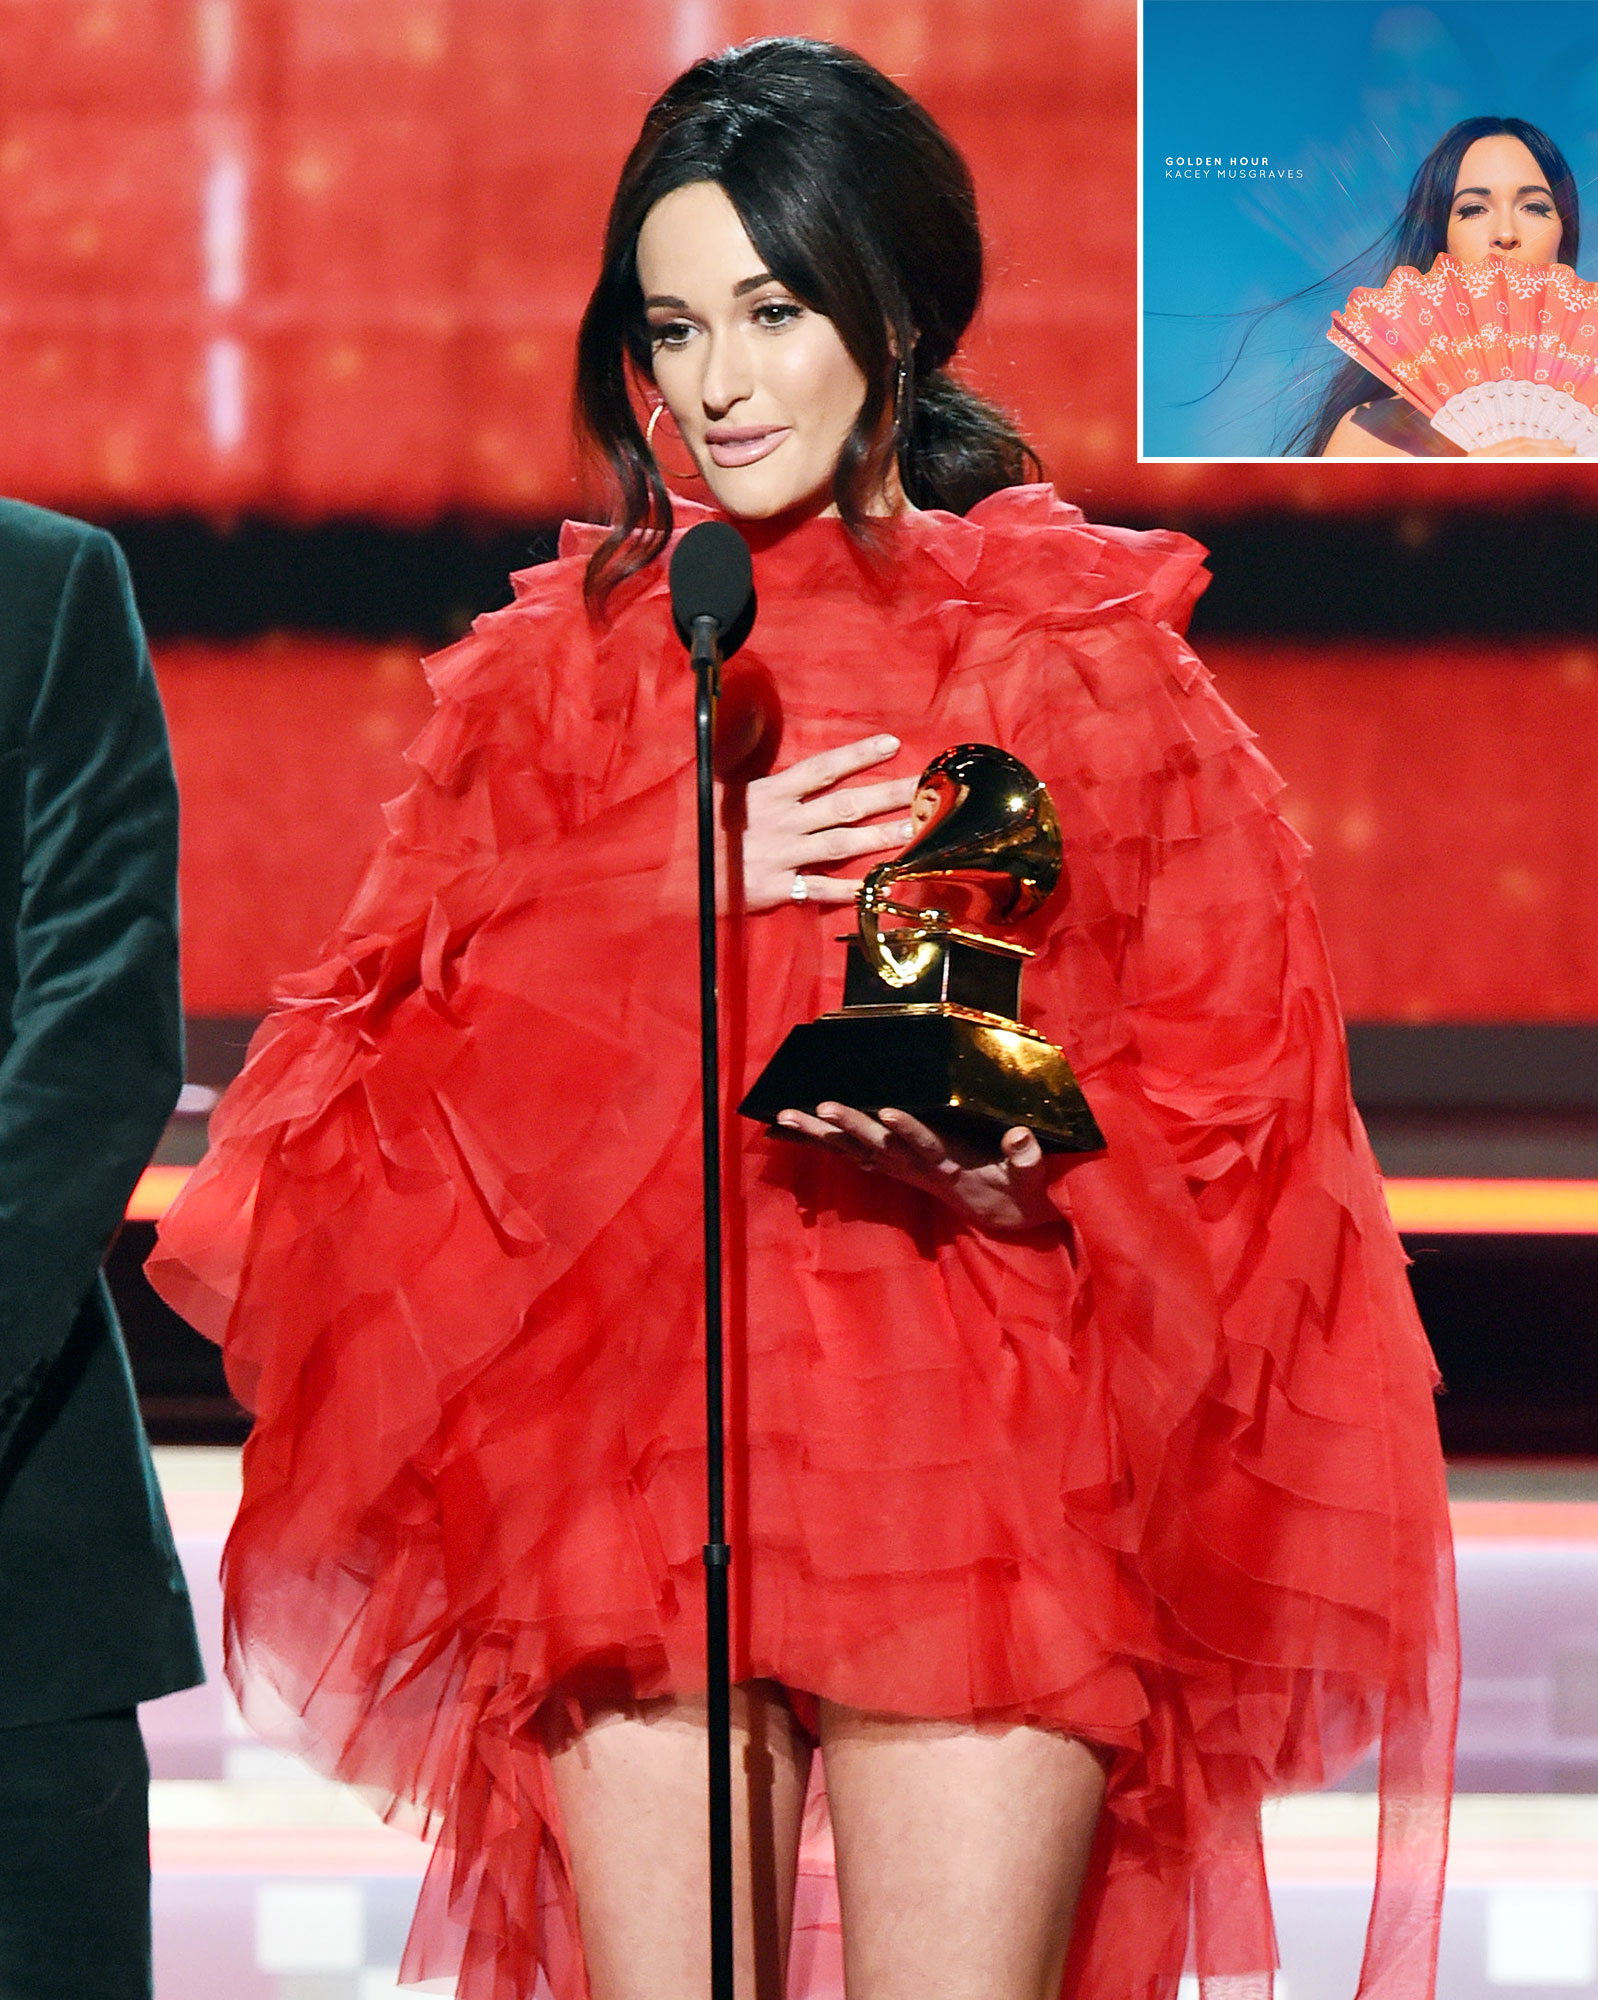 Grammys 2019 Kacey Musgraves Golden Hour - Cardi B, Invasion of Privacy Janelle Monae, Dirty Computer Brandi Carlile, By the Way, I Forgive You Drake, Scorpion H.E.R., H.E.R. Post Malone, Beer Bongs & Bentleys Kacey Musgraves, Golden Hour Feat. Kendrick Lamar, Black Panther: the Album